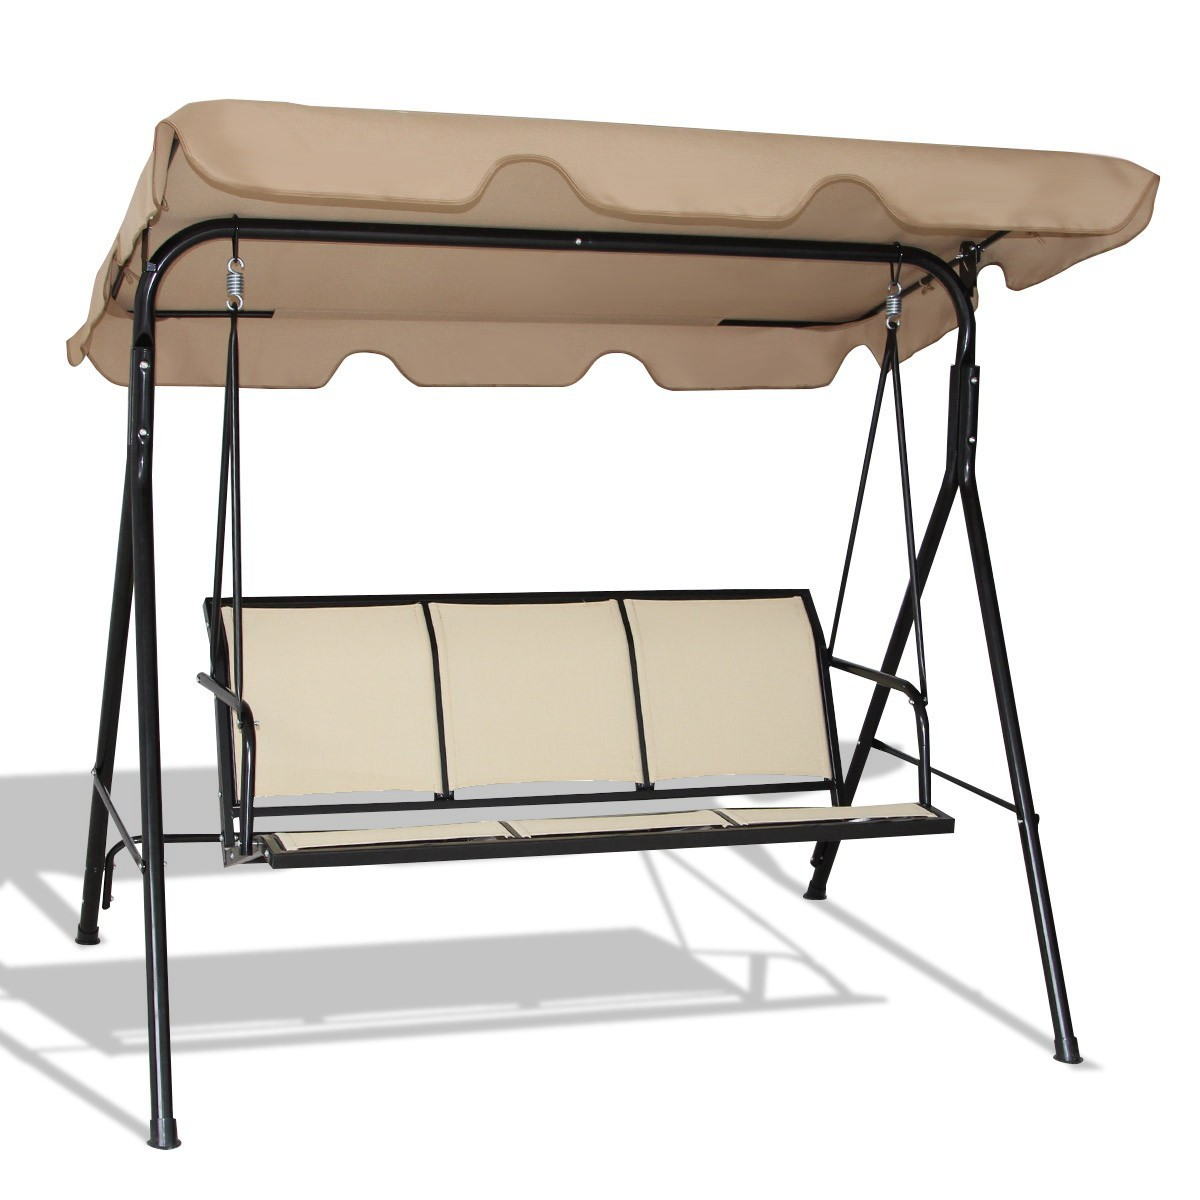 Outdoor Swing Bench: Outdoor Patio 3 Person Porch Swing Bench Chair With Canopy